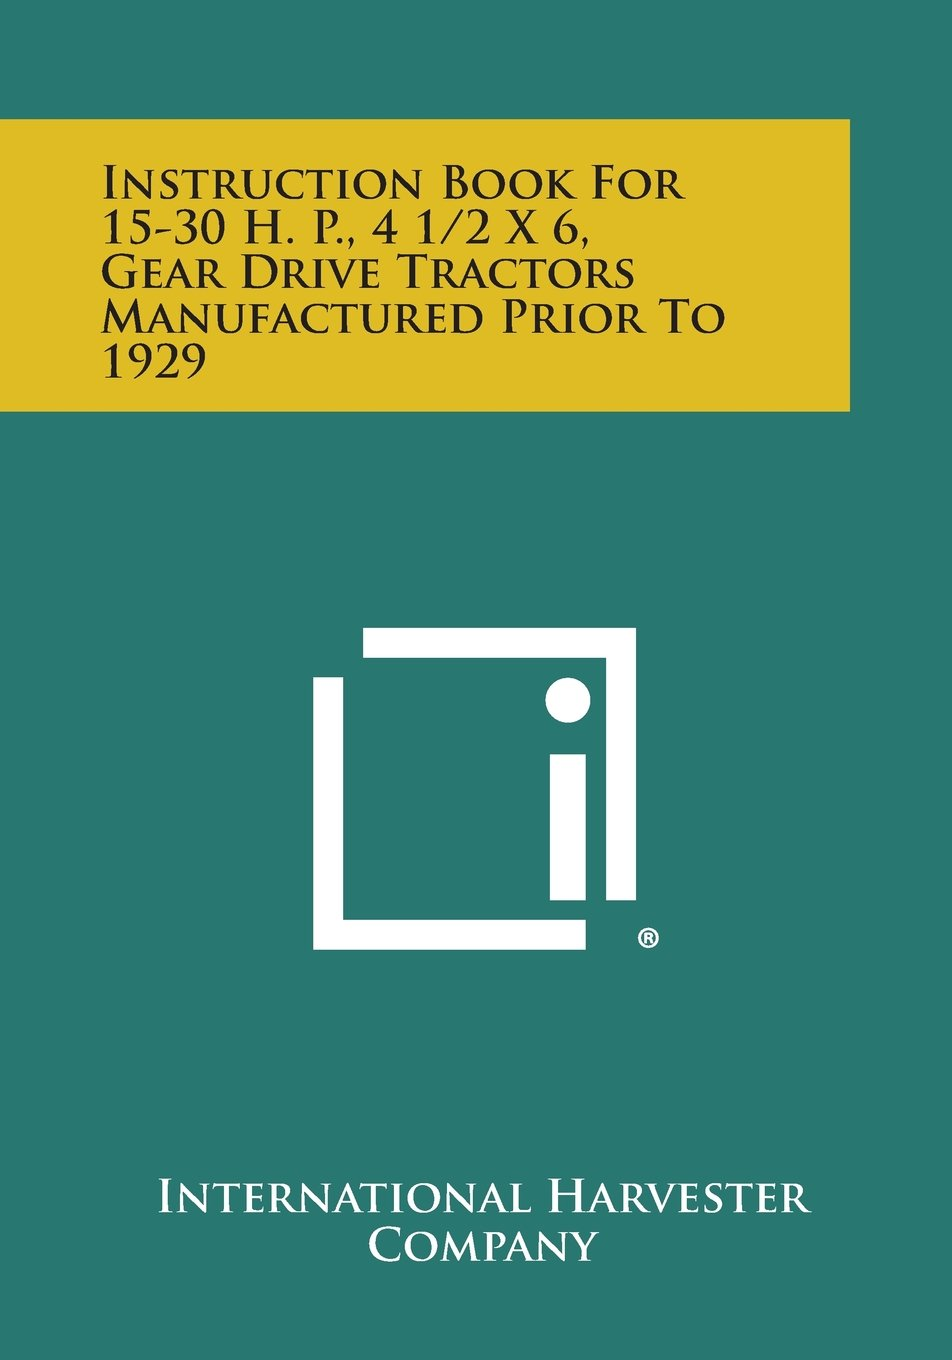 Instruction Book for 15-30 H. P., 4 1/2 X 6, Gear Drive Tractors Manufactured Prior to 1929 ebook